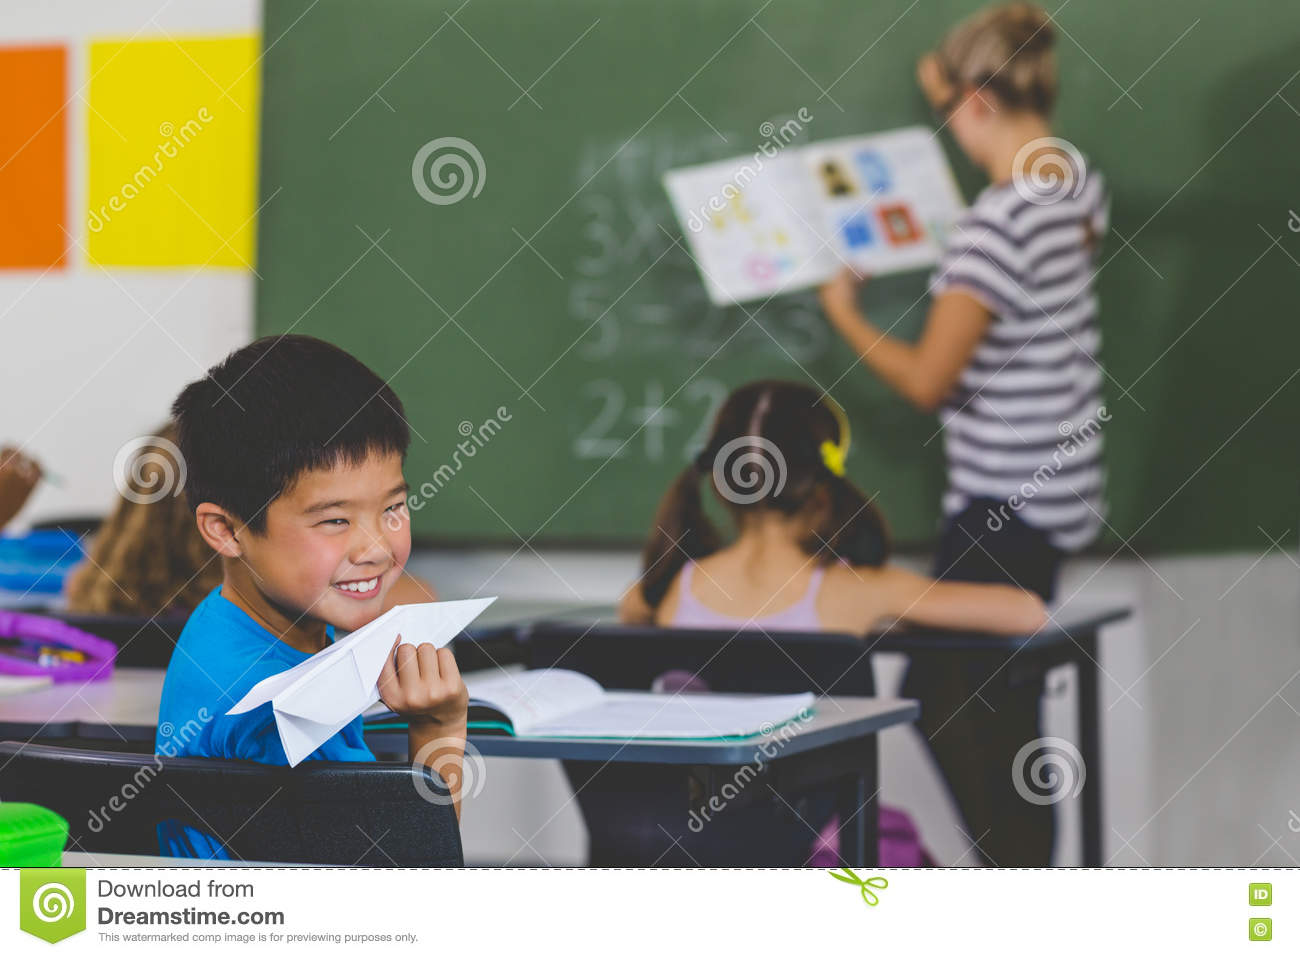 Boy with a paper plane while teacher teaching in classroom